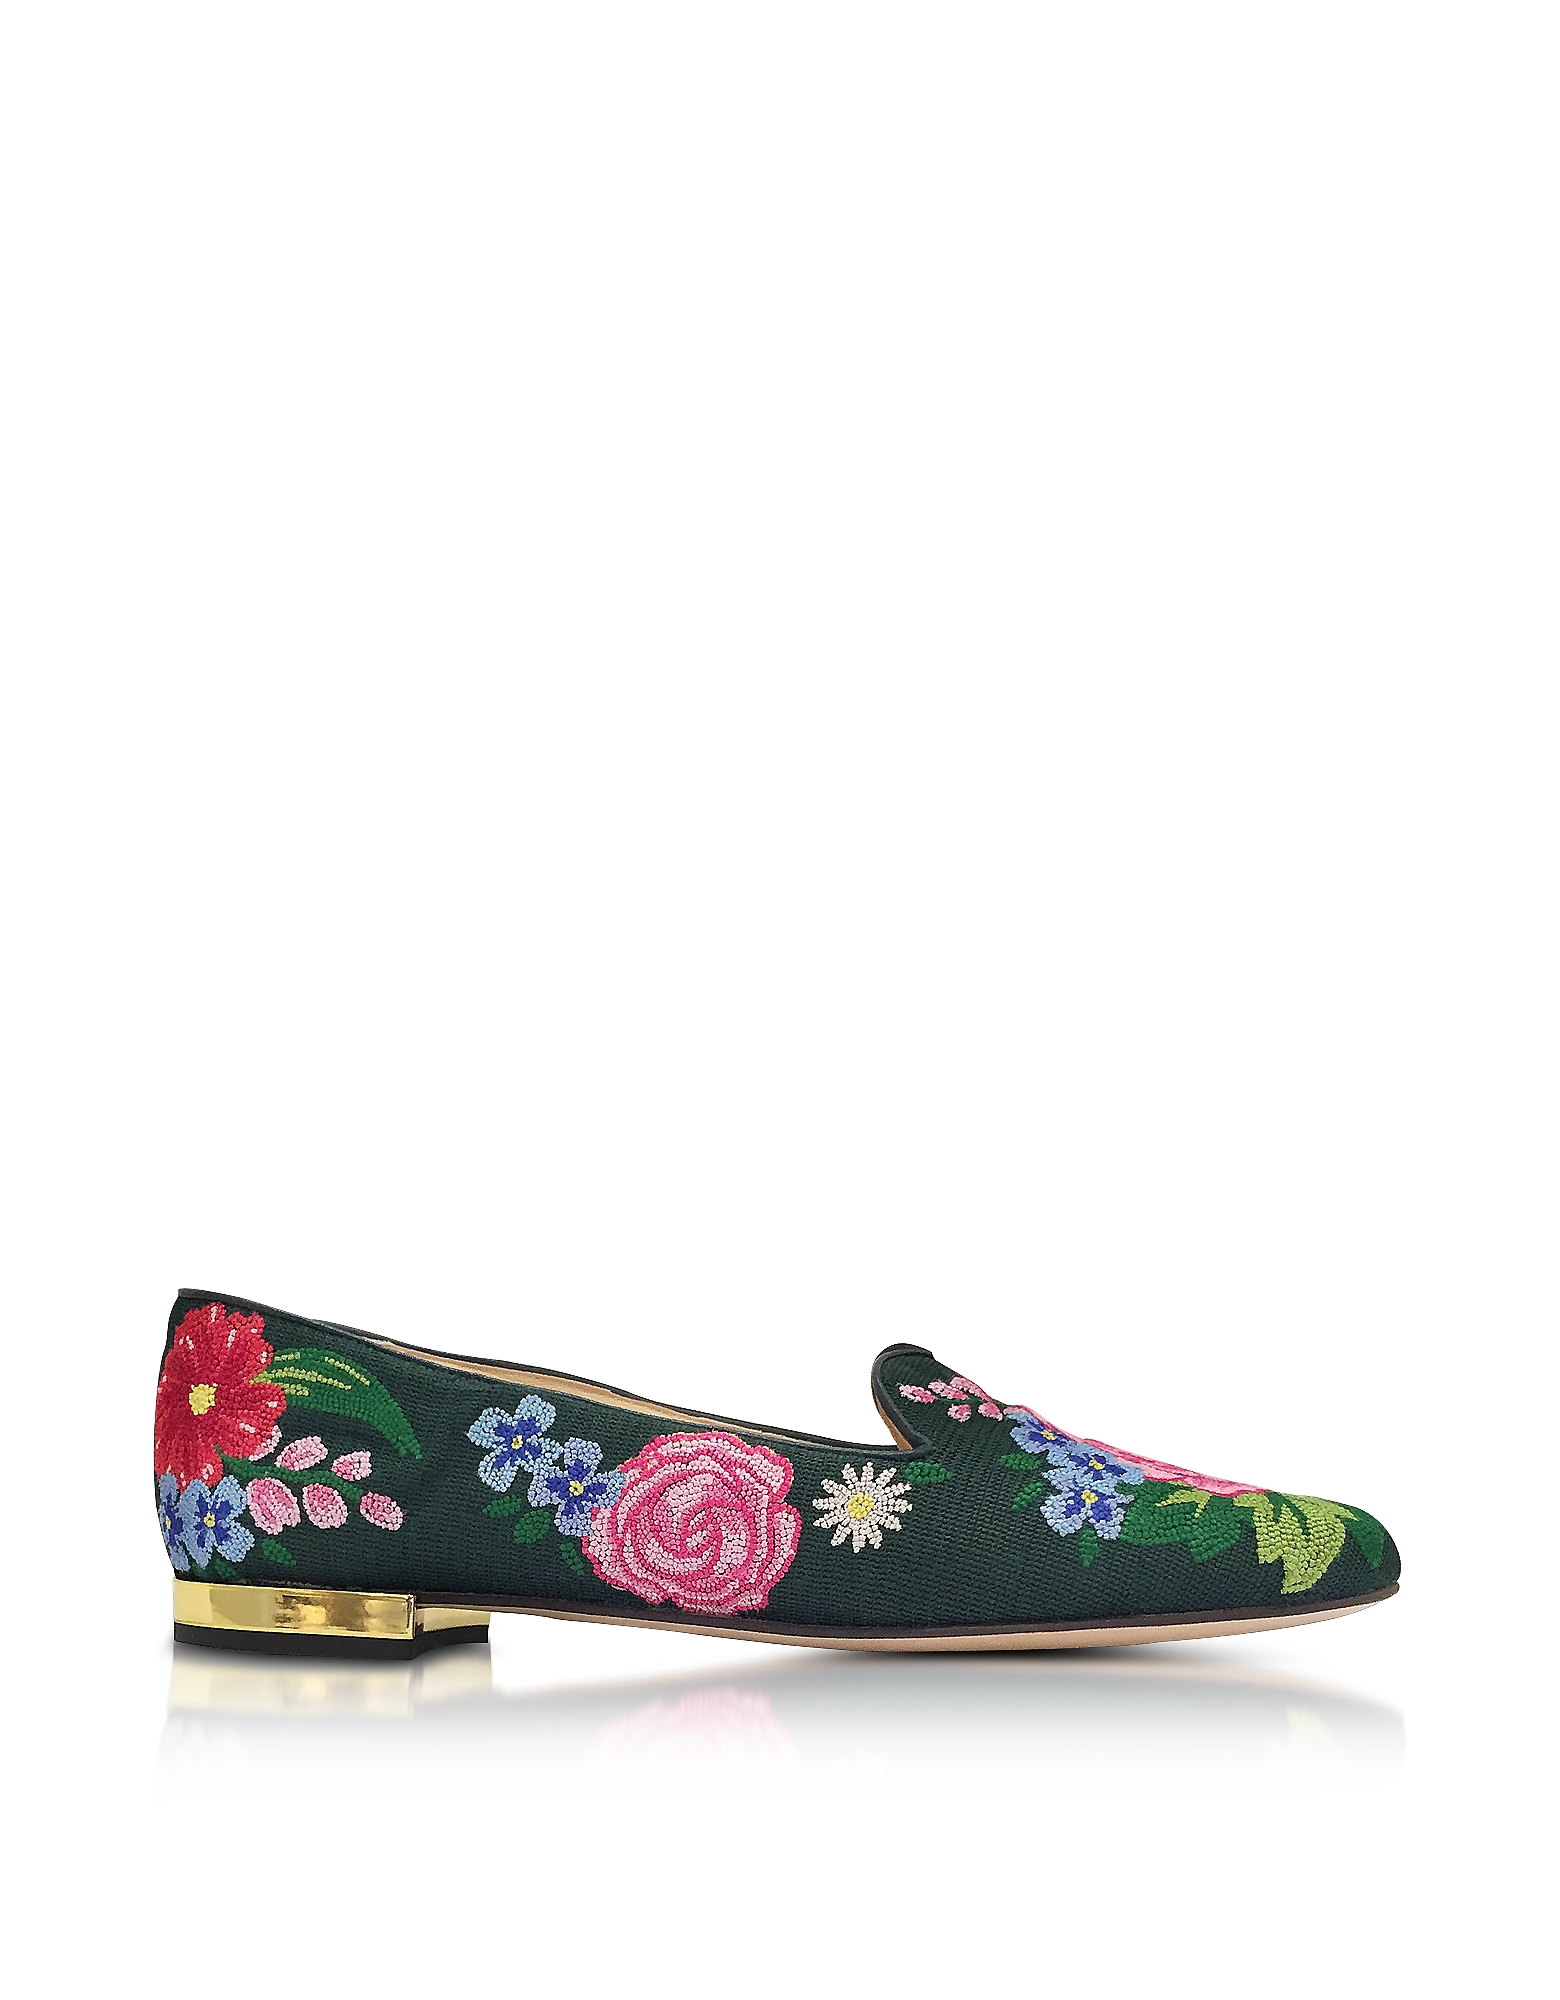 Charlotte Olympia Shoes, Rose Garden Multicolor Embroidered Canvas Slipper